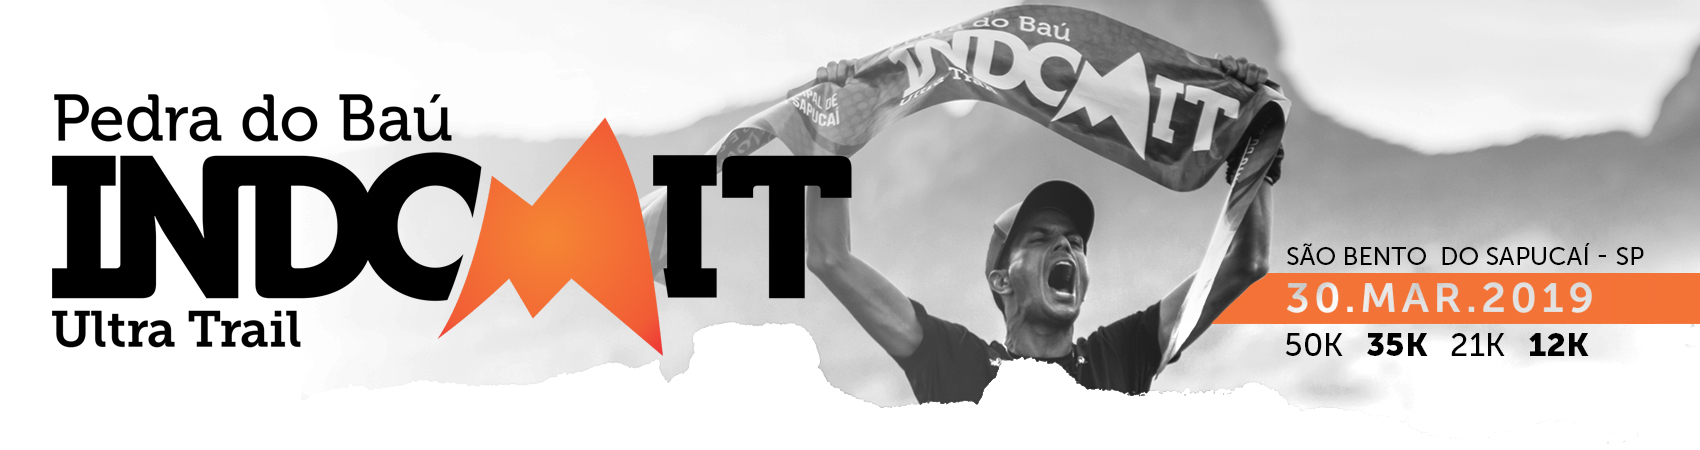 INDOMIT PEDRA DO BAÚ - ULTRA TRAIL 2019